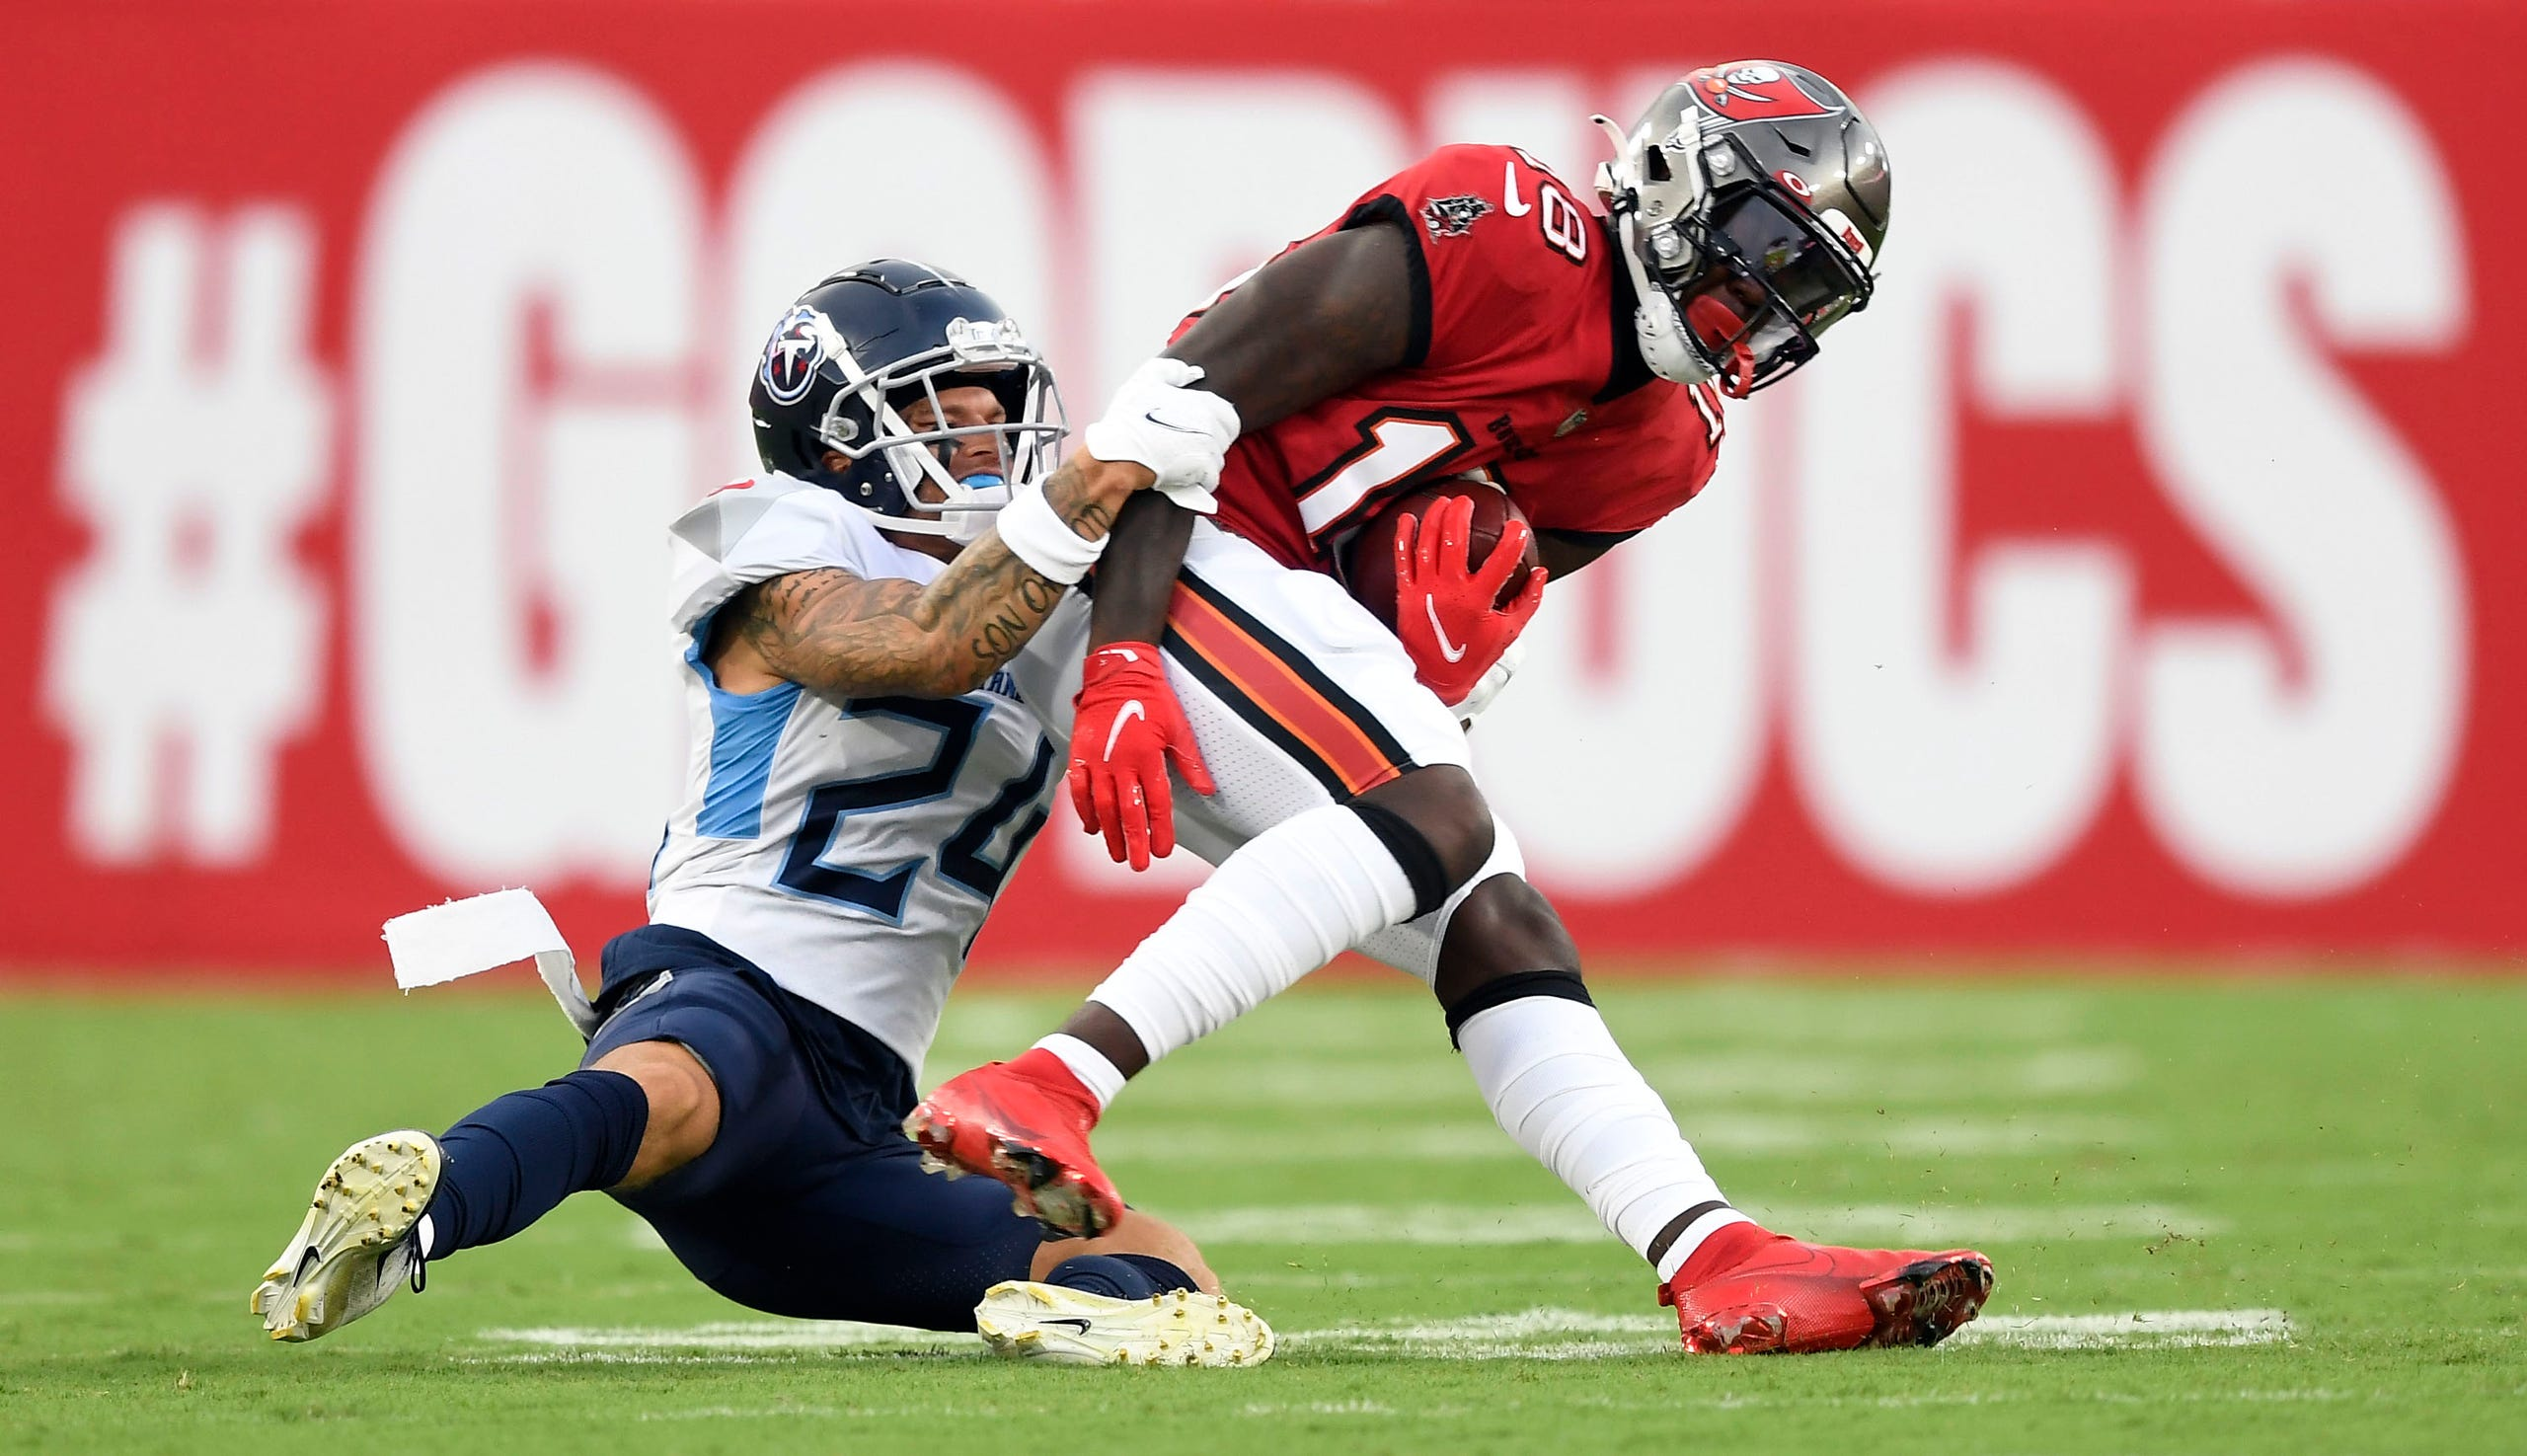 Tennessee Titans cornerback Elijah Molden (24) tackles Tampa Bay Buccaneers wide receiver Tyler Johnson (18) during the first quarter of an NFL preseason game at Raymond James Stadium Saturday, Aug. 21, 2021 in Tampa, Fla.